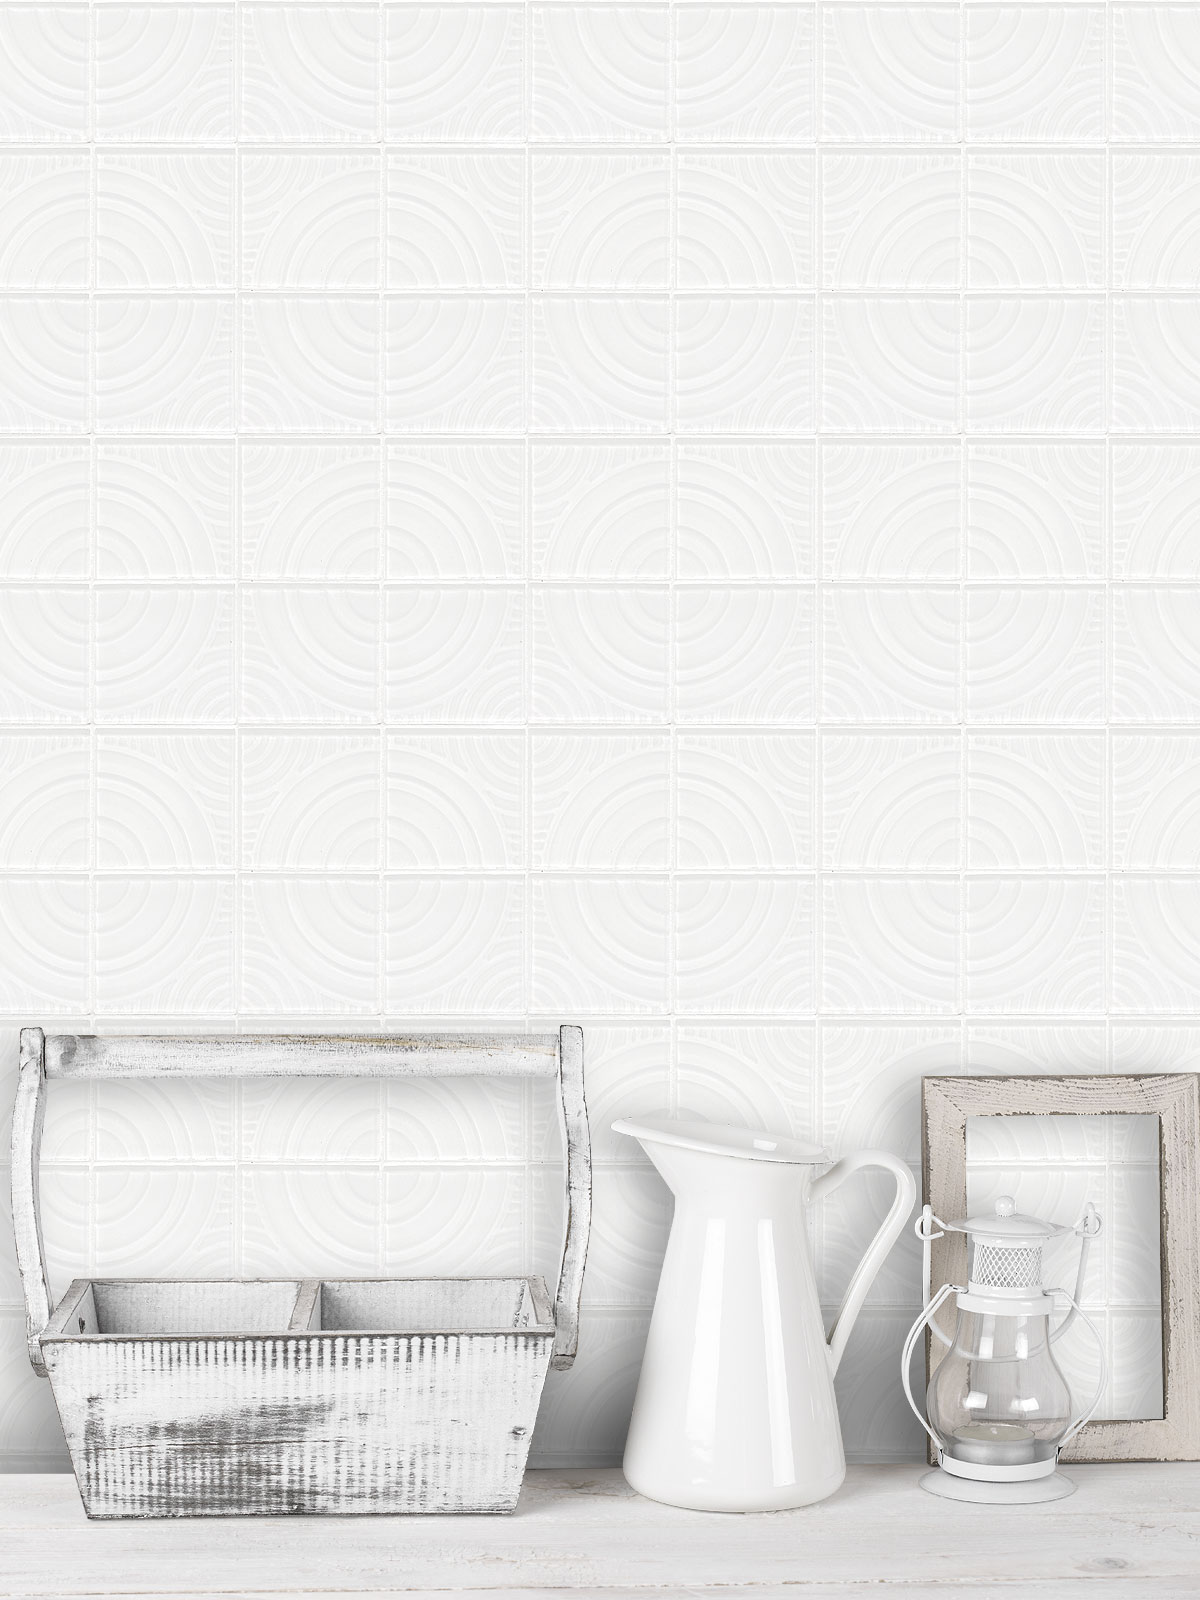 White glass backsplash tile with 3D pattern BA64001